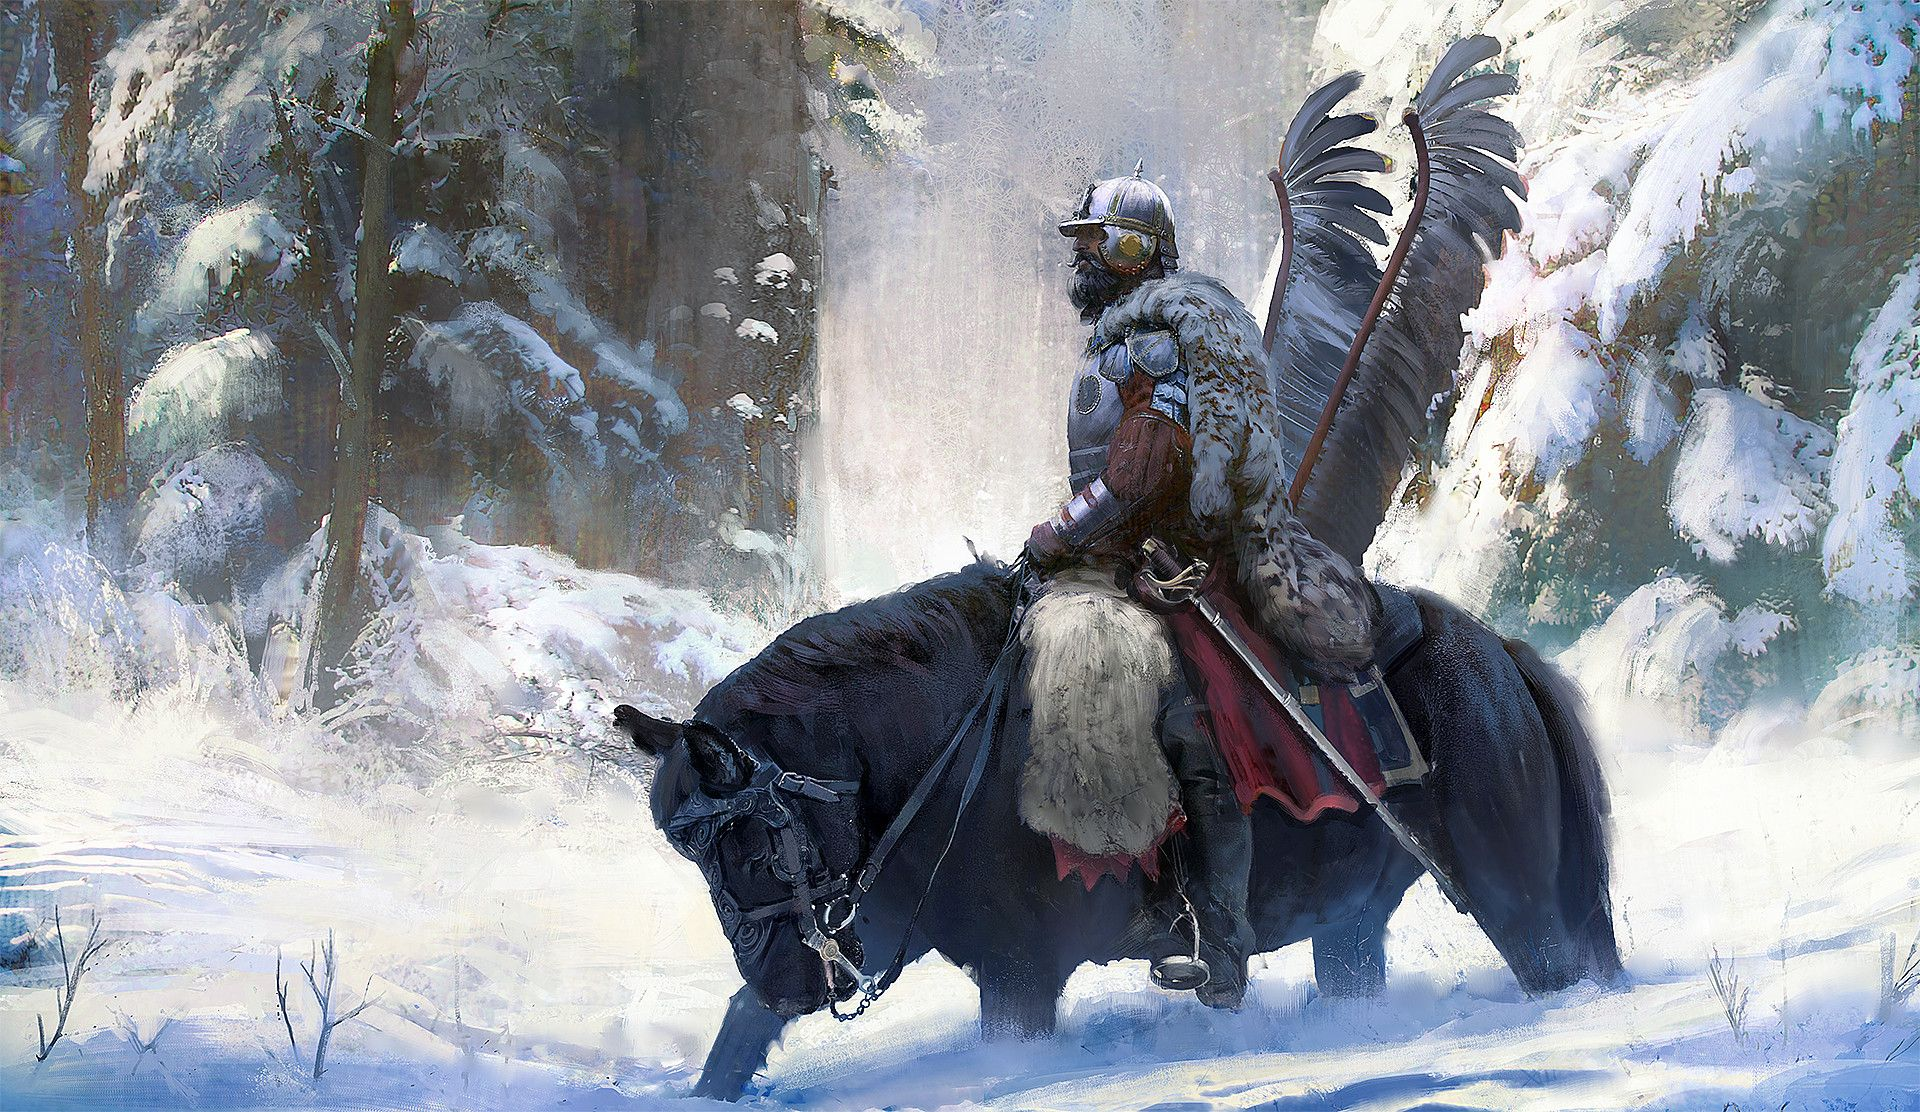 polish concept artist's painting tribute to one of the best cavalries in Europe - Polish Hussars.